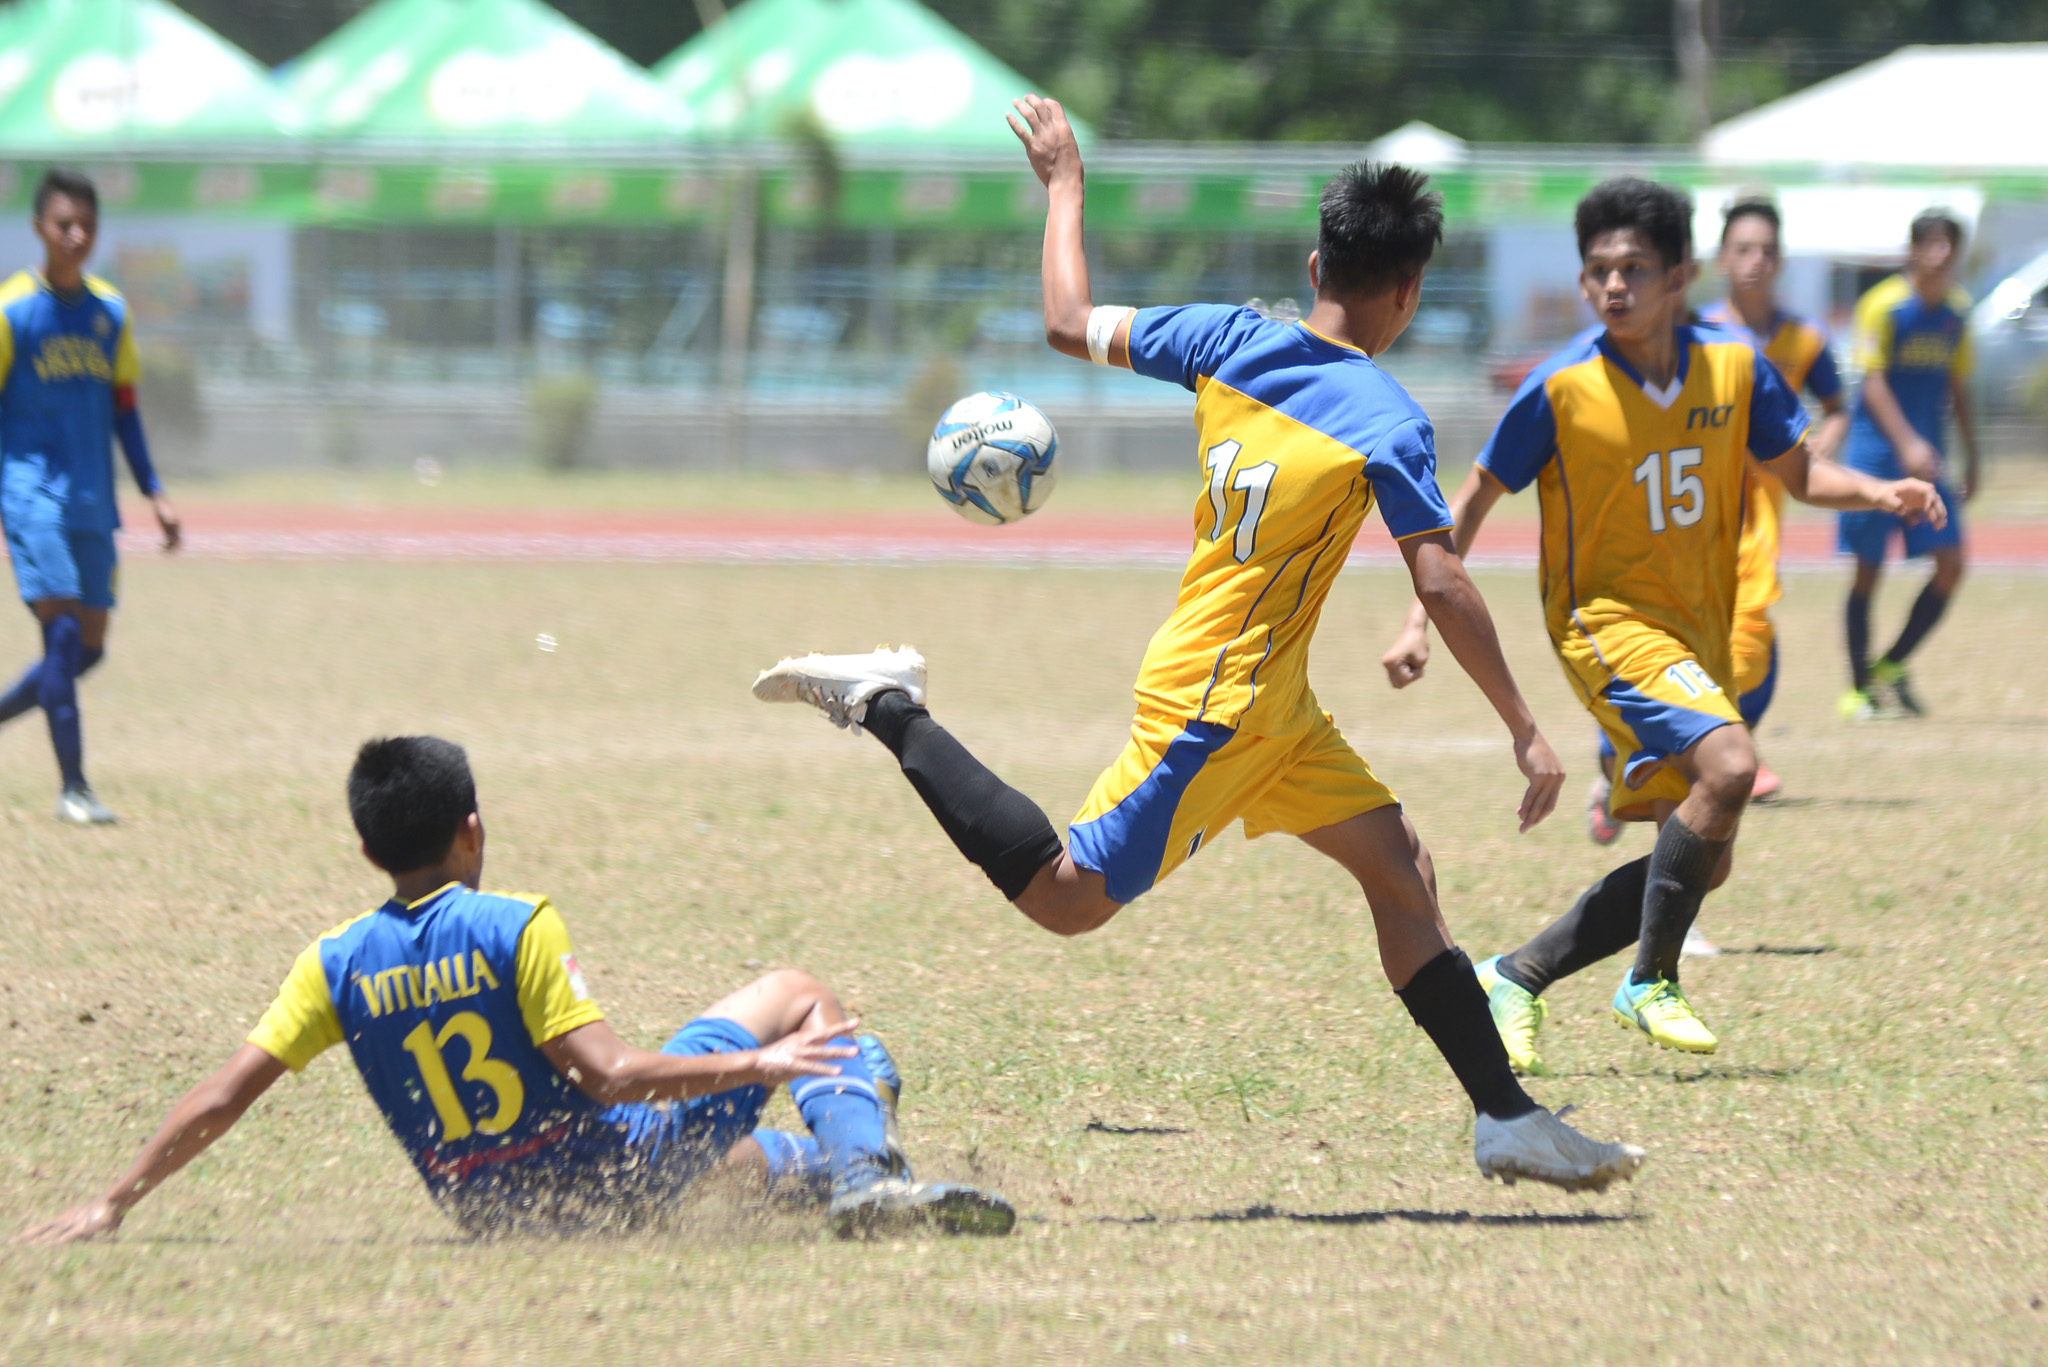 HEATED FINAL. NCR emerges victorious after a scuffled-filled football final against Central Visayas at Palaro 2016. Photo by Roy Secretario/Rappler